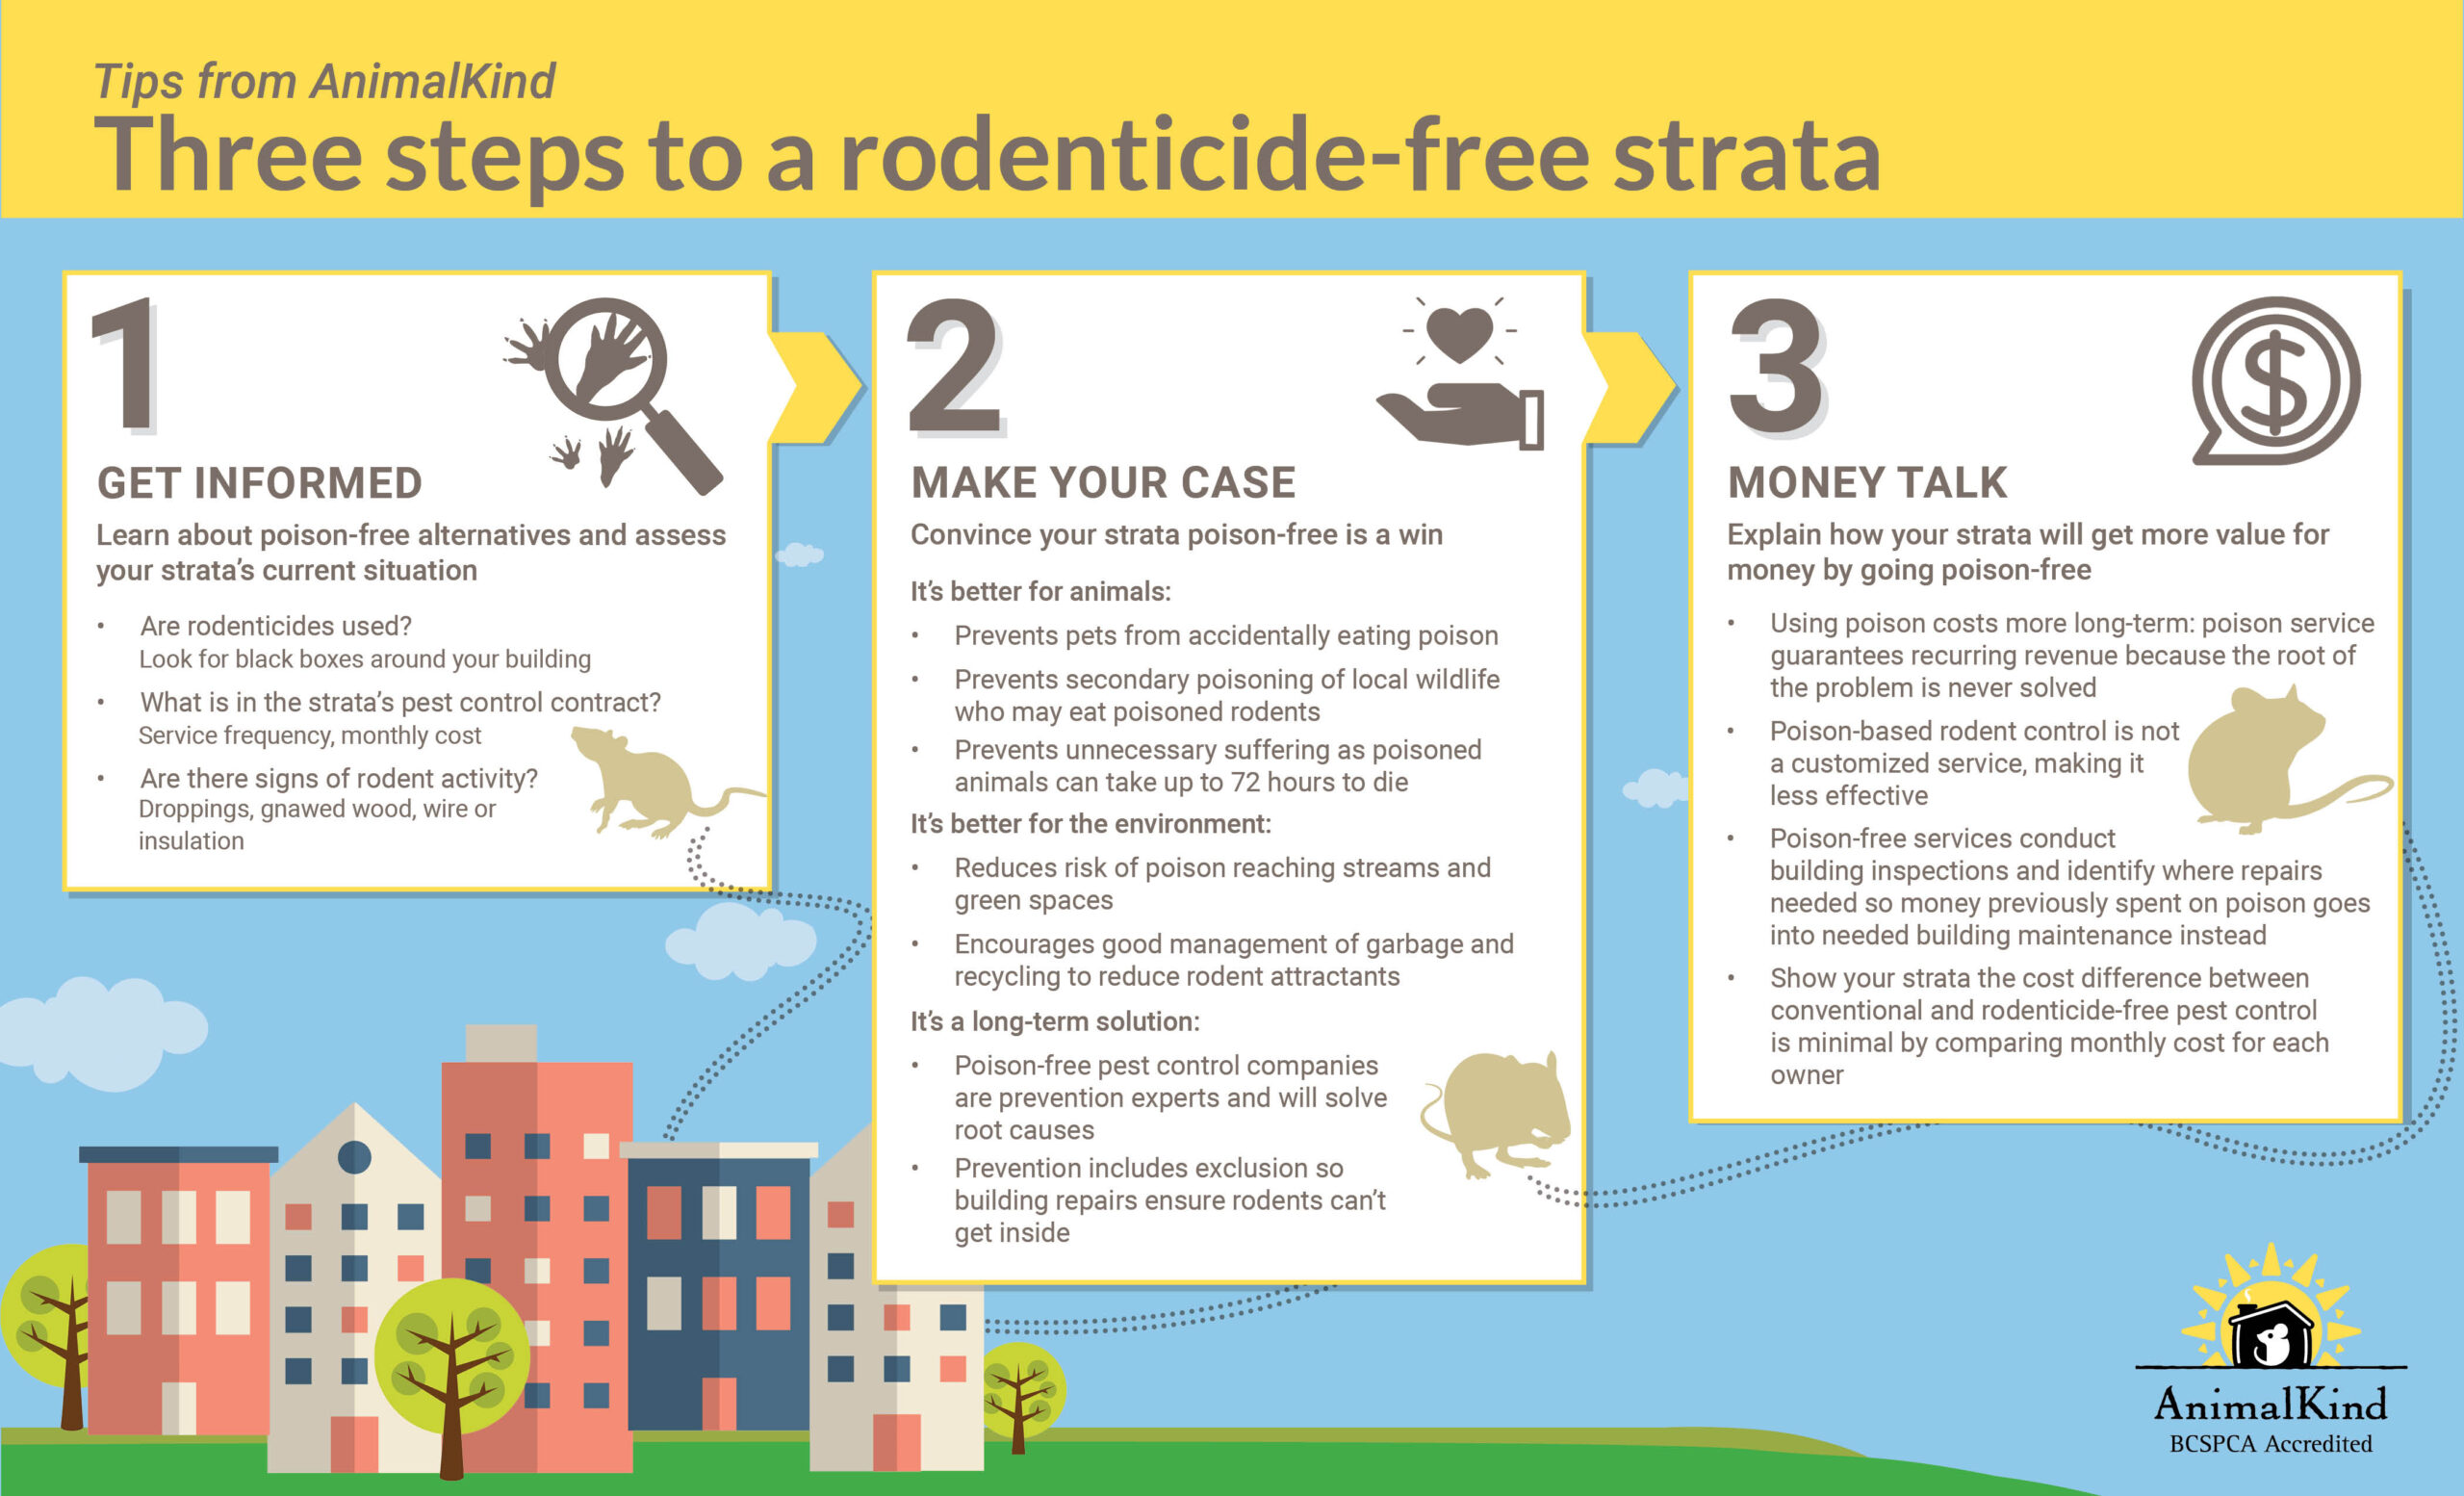 Rodenticide-free pest control for stratas